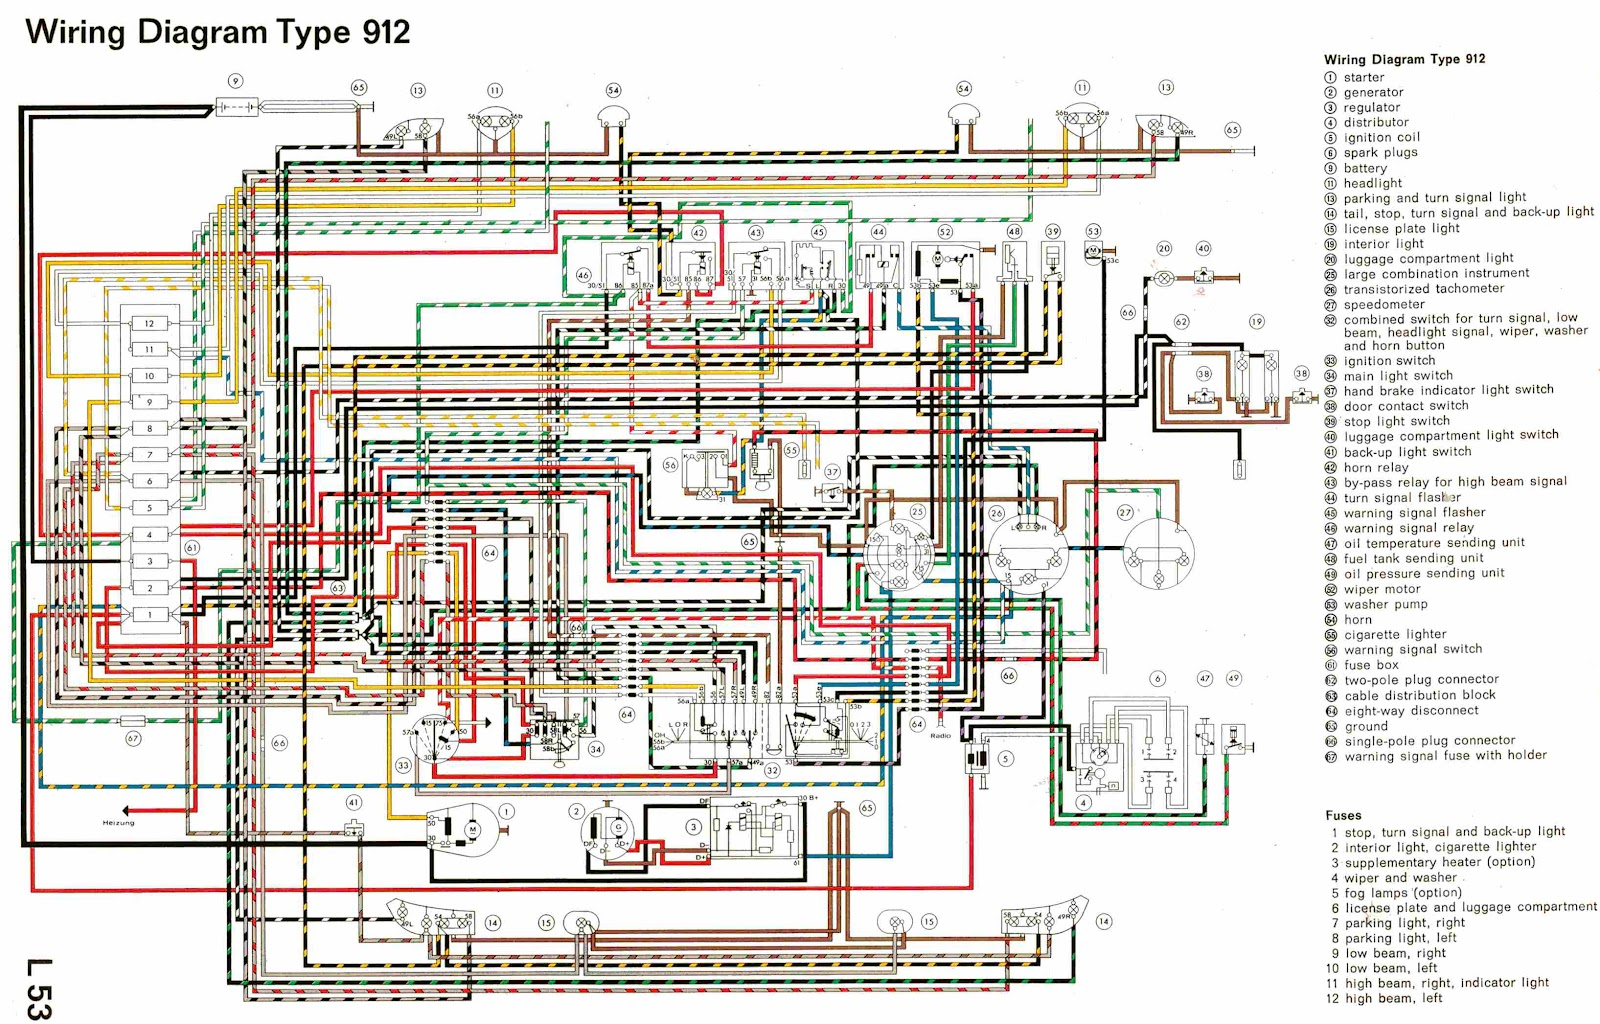 Saab 9 3 Electrical Wiring Diagram Diagrams Engine Tern Signal Schematic Peugeot 504